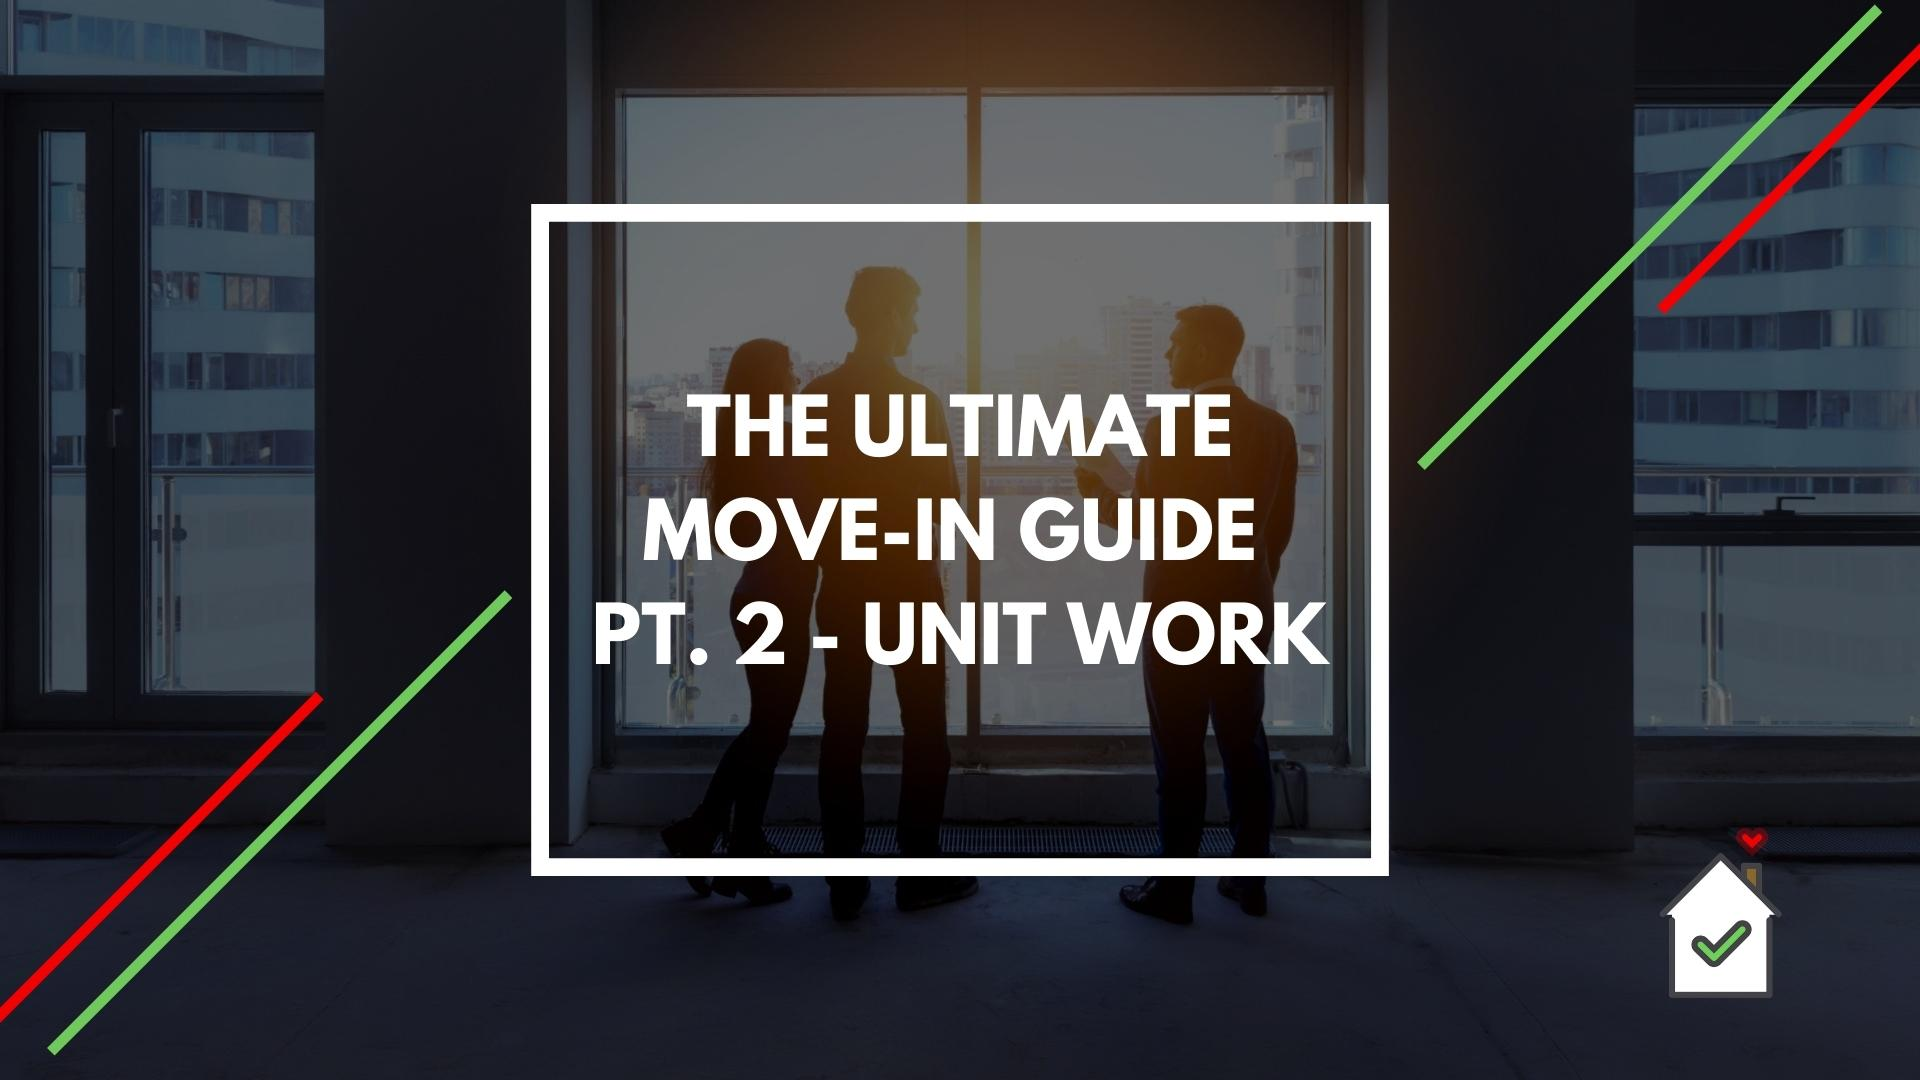 7-tenant-report-the-ultimate-move-in-guide-pt2-unit-work